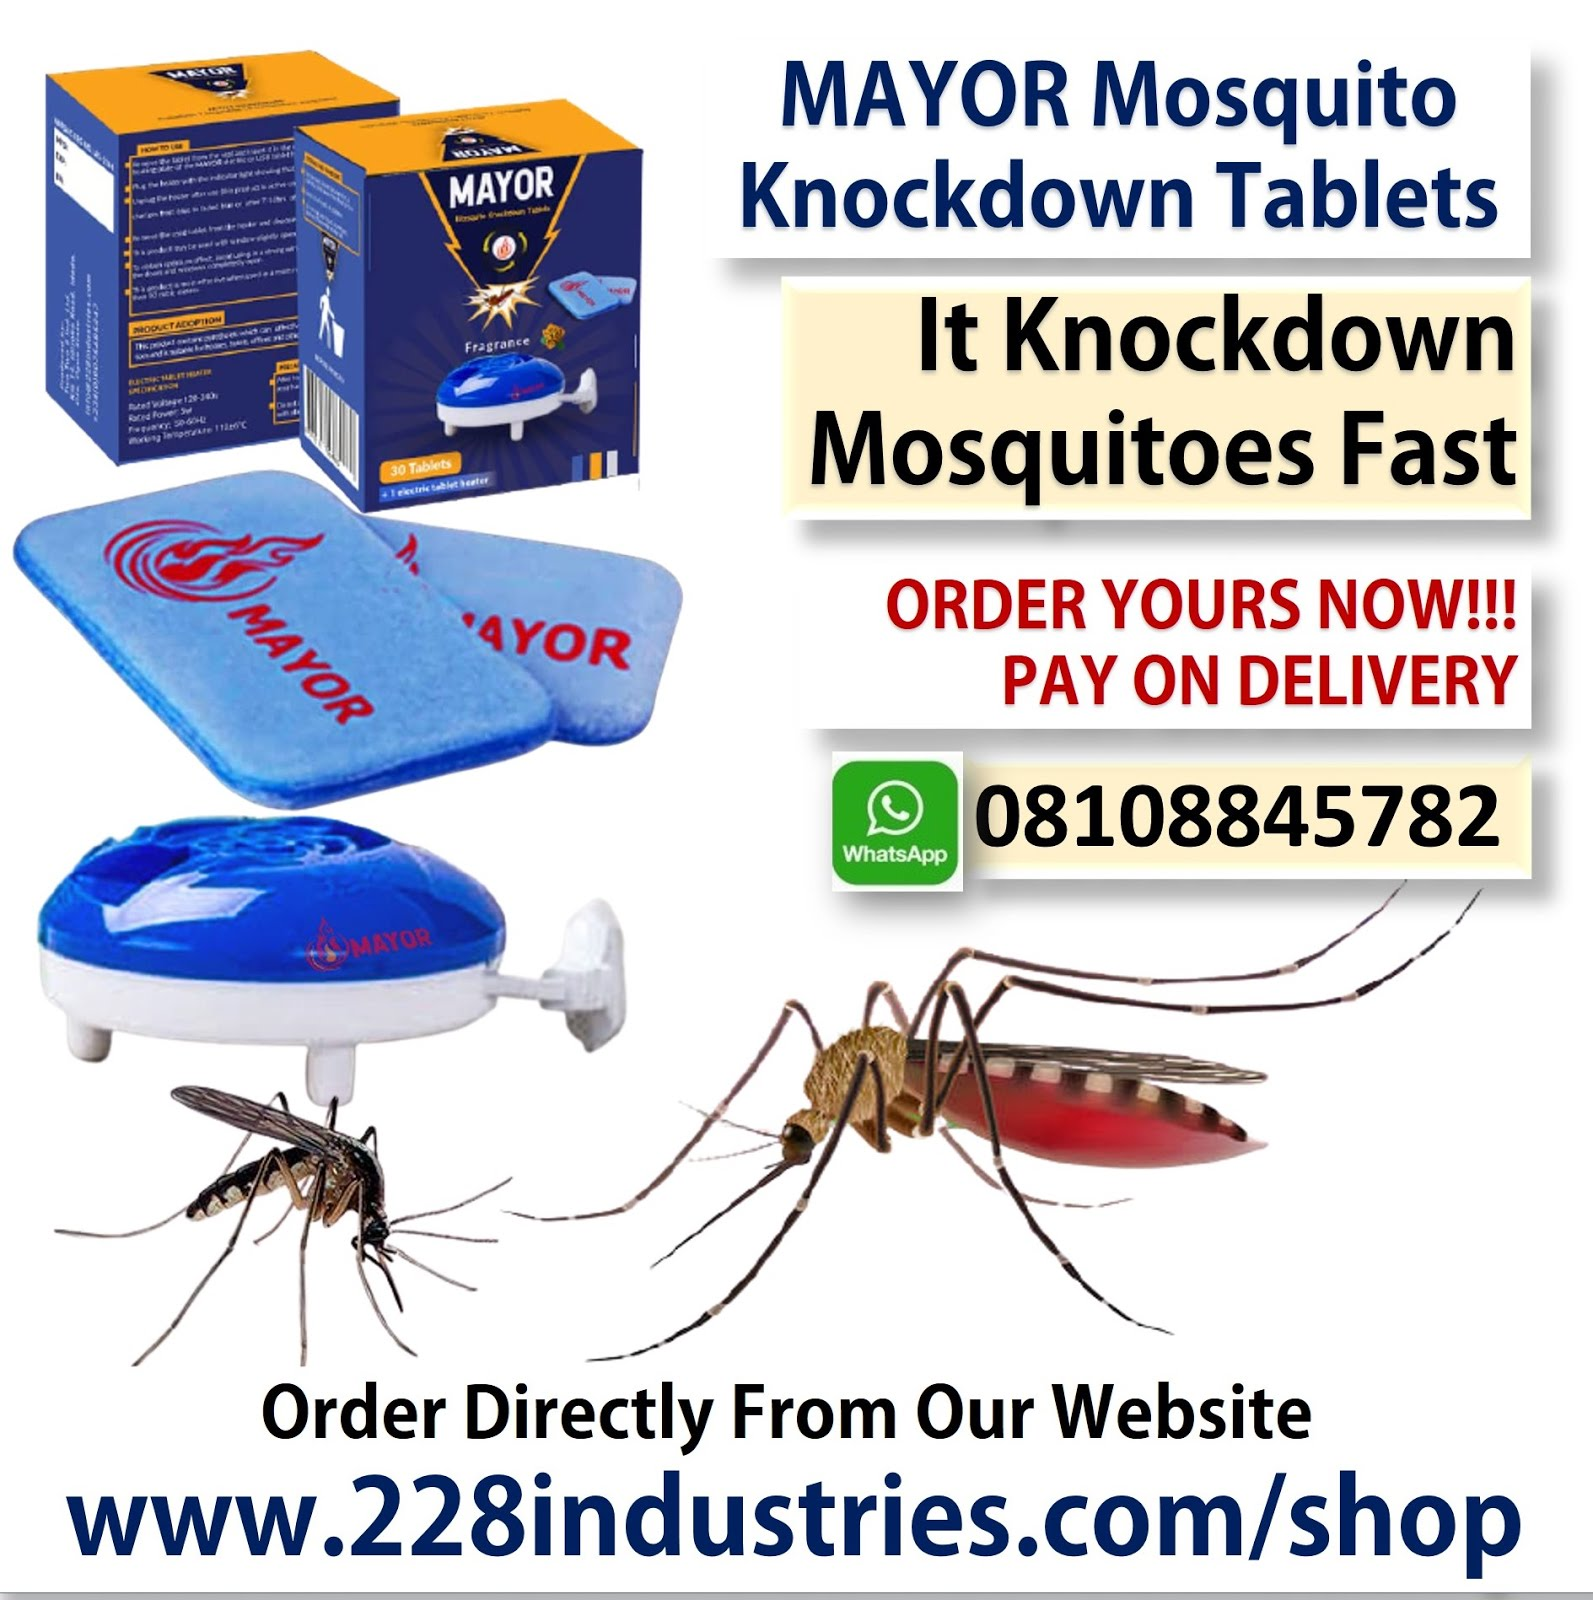 Buy Mayor Mosquito Knockdown